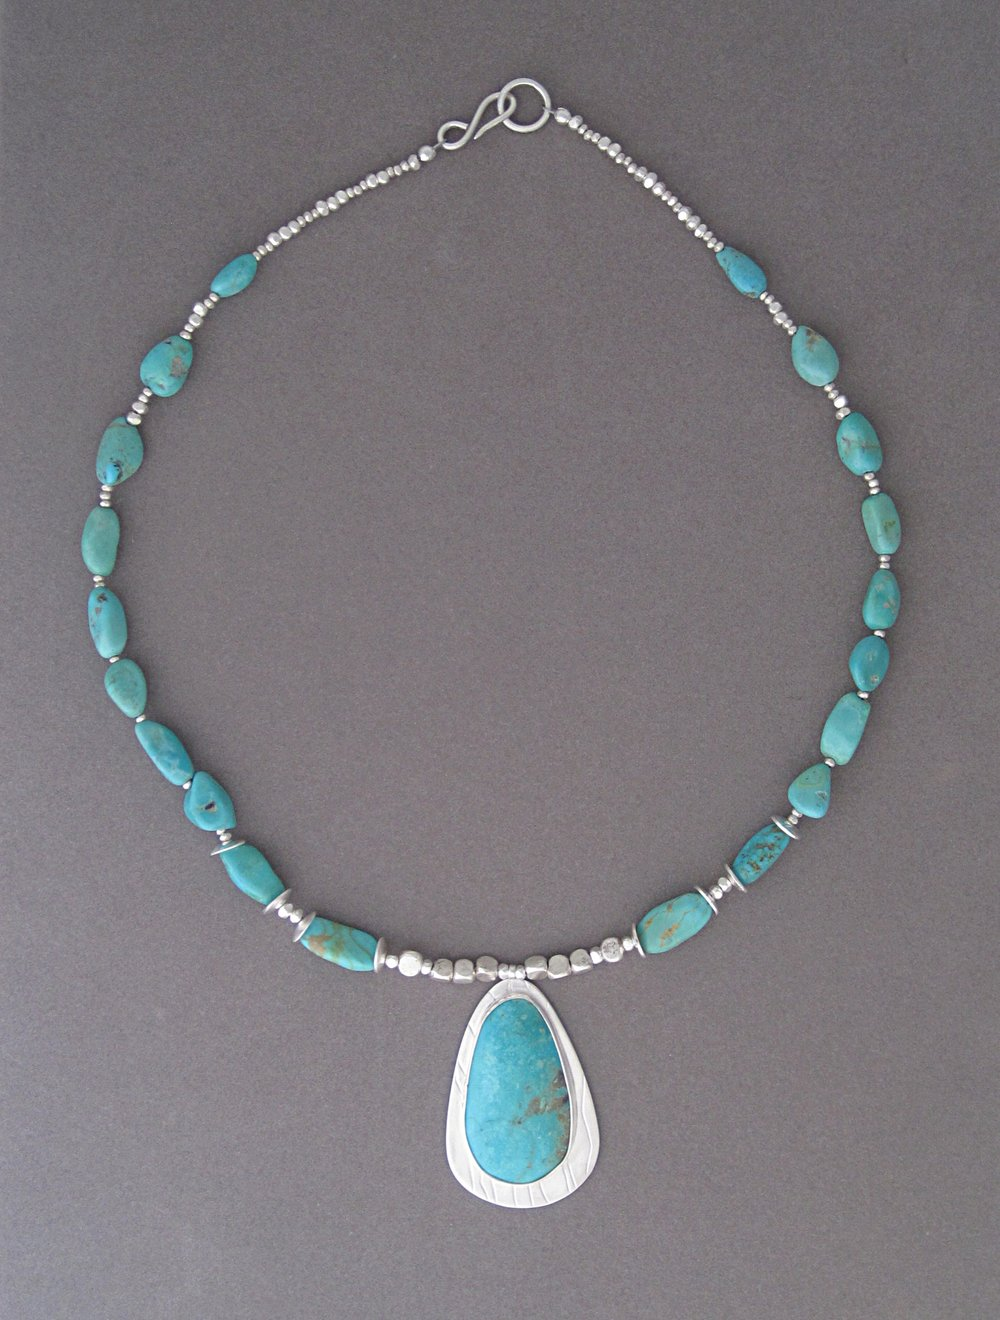 Custom American turquoise necklace with sterling silver